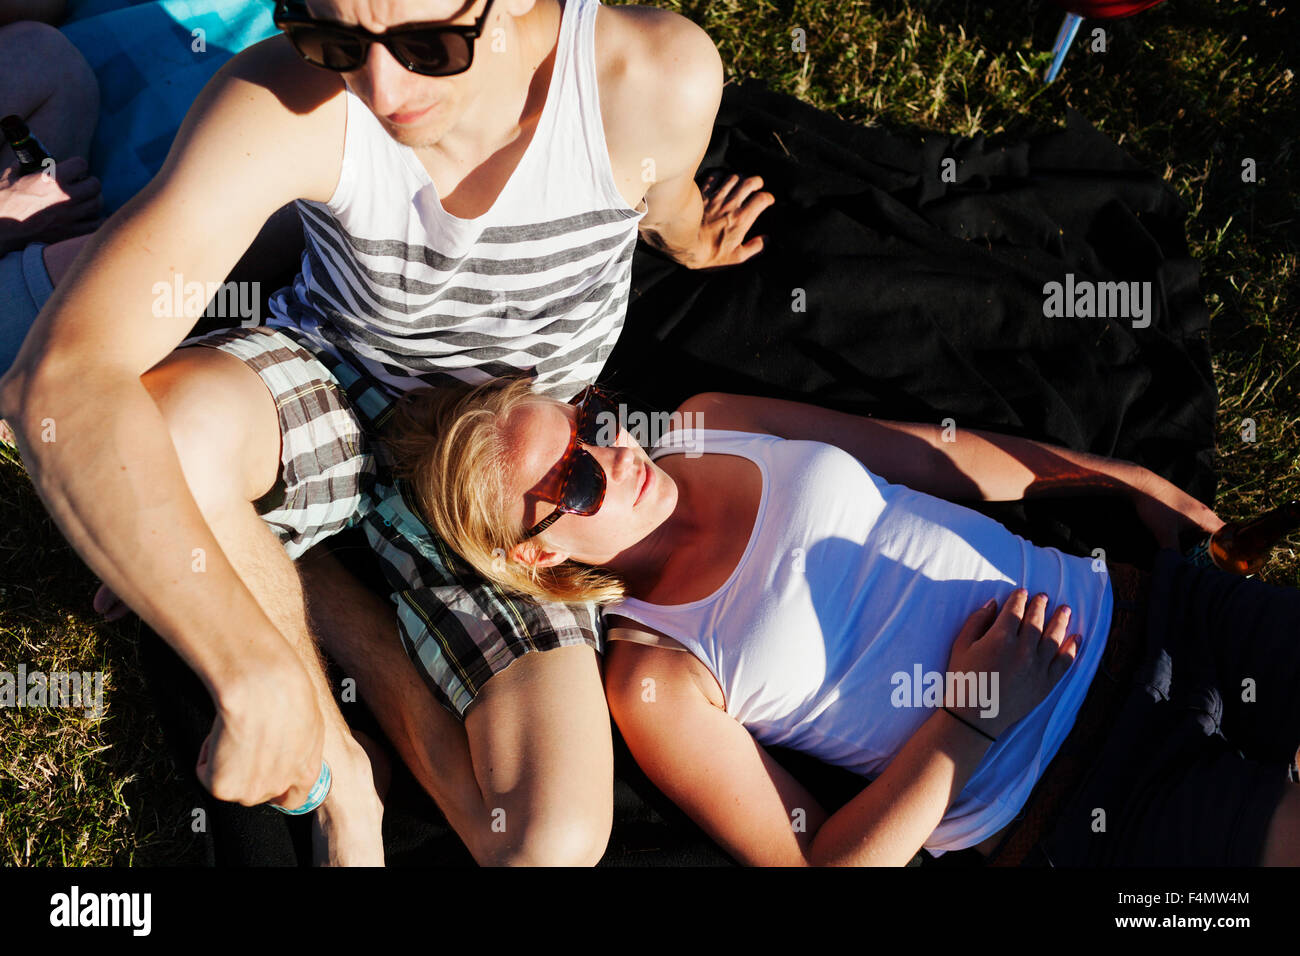 High angle view of woman and man relaxing at picnic Photo Stock